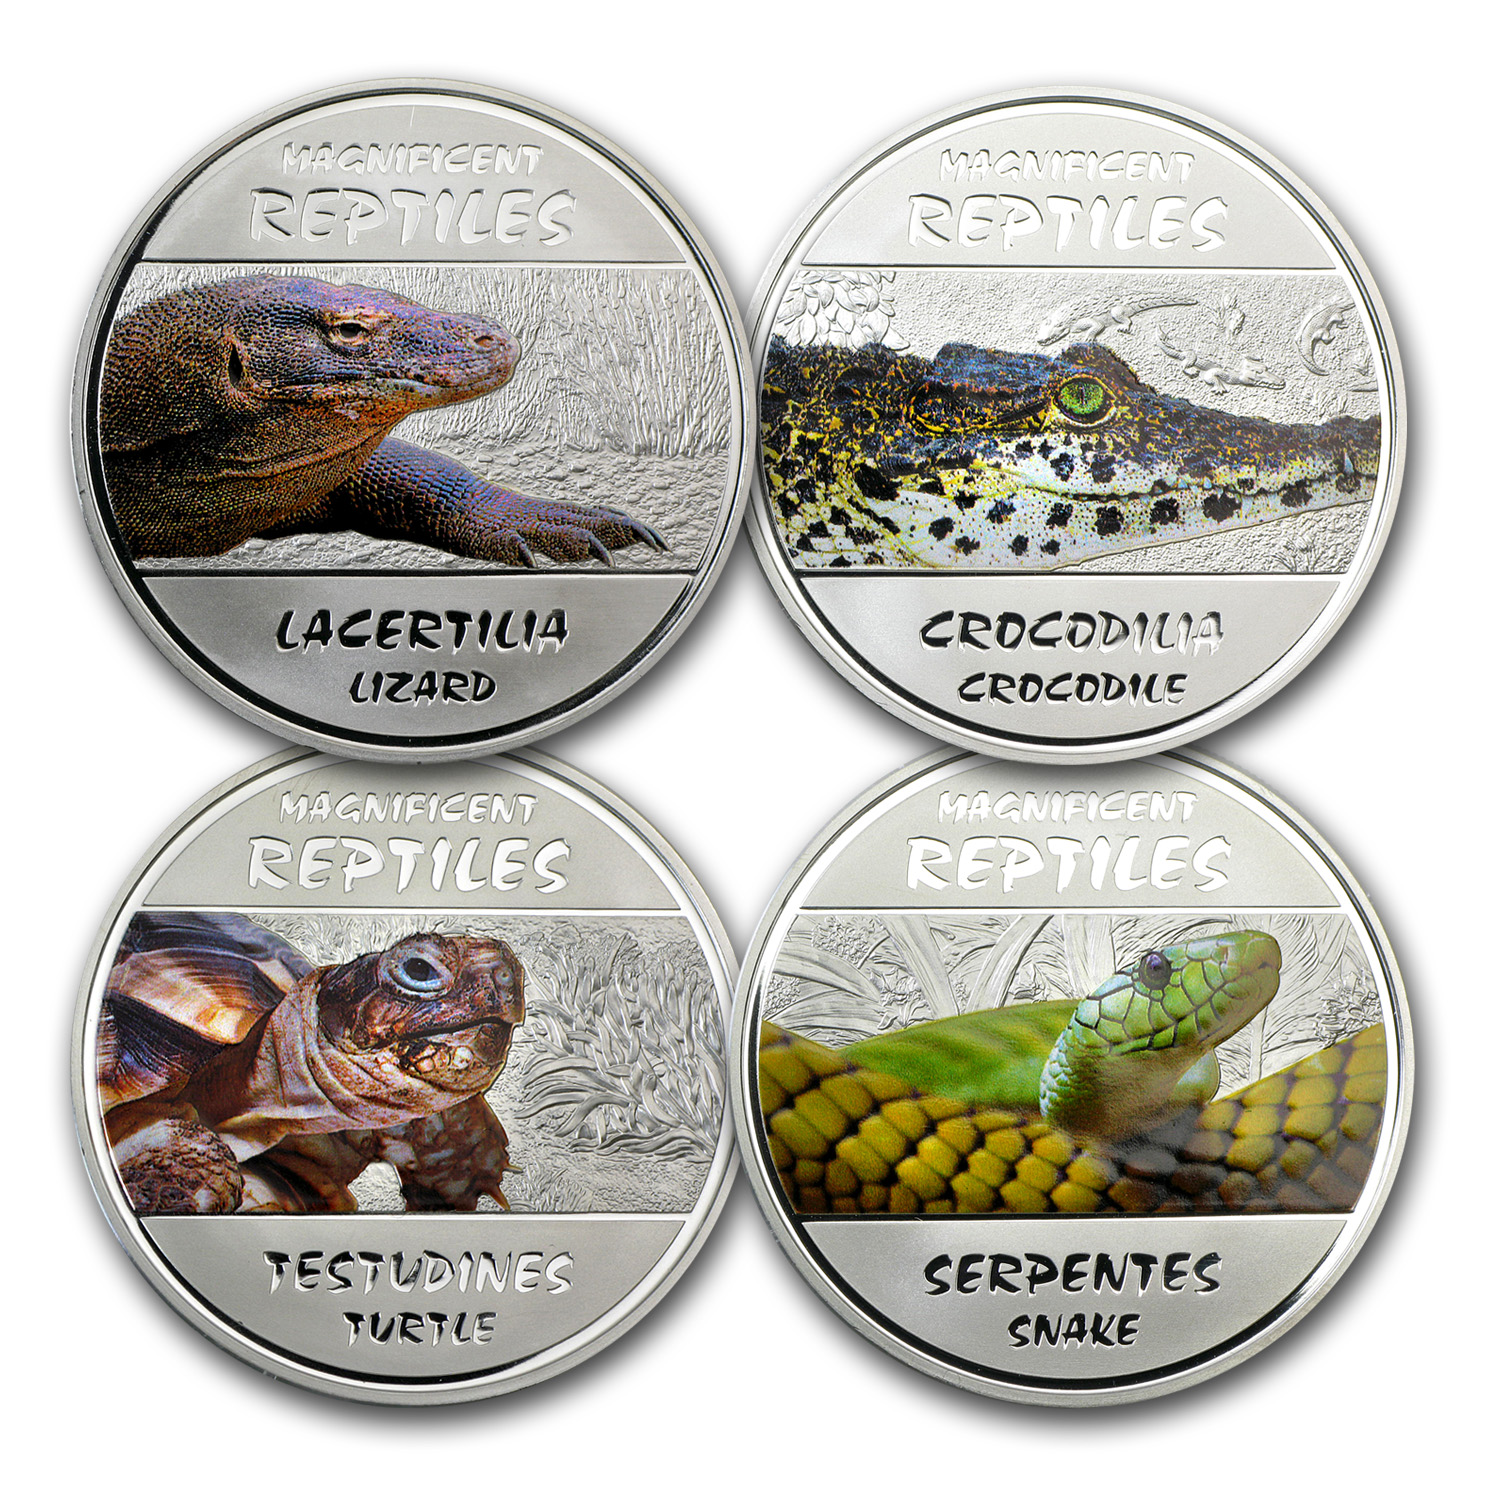 Congo 2013 Silver Proof Magnificent Reptiles 4-coin set